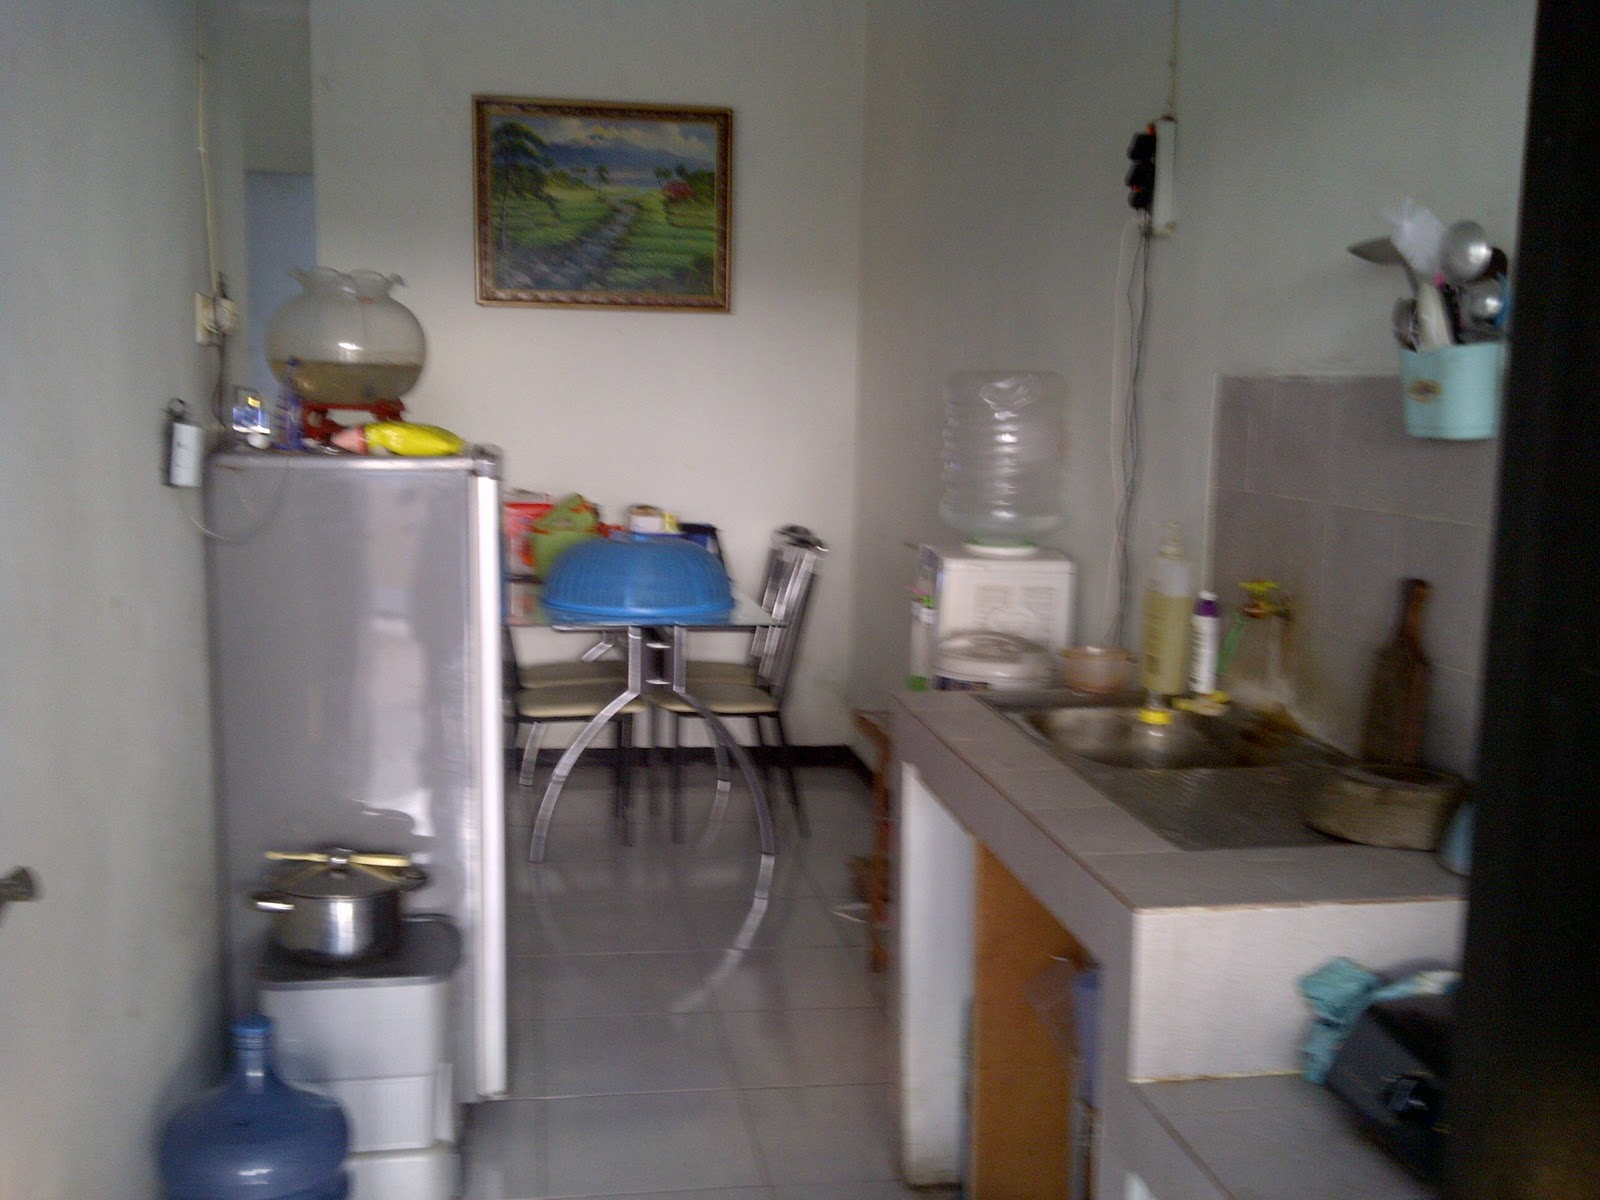 griya design interior solutions tips merancang dapur mungil